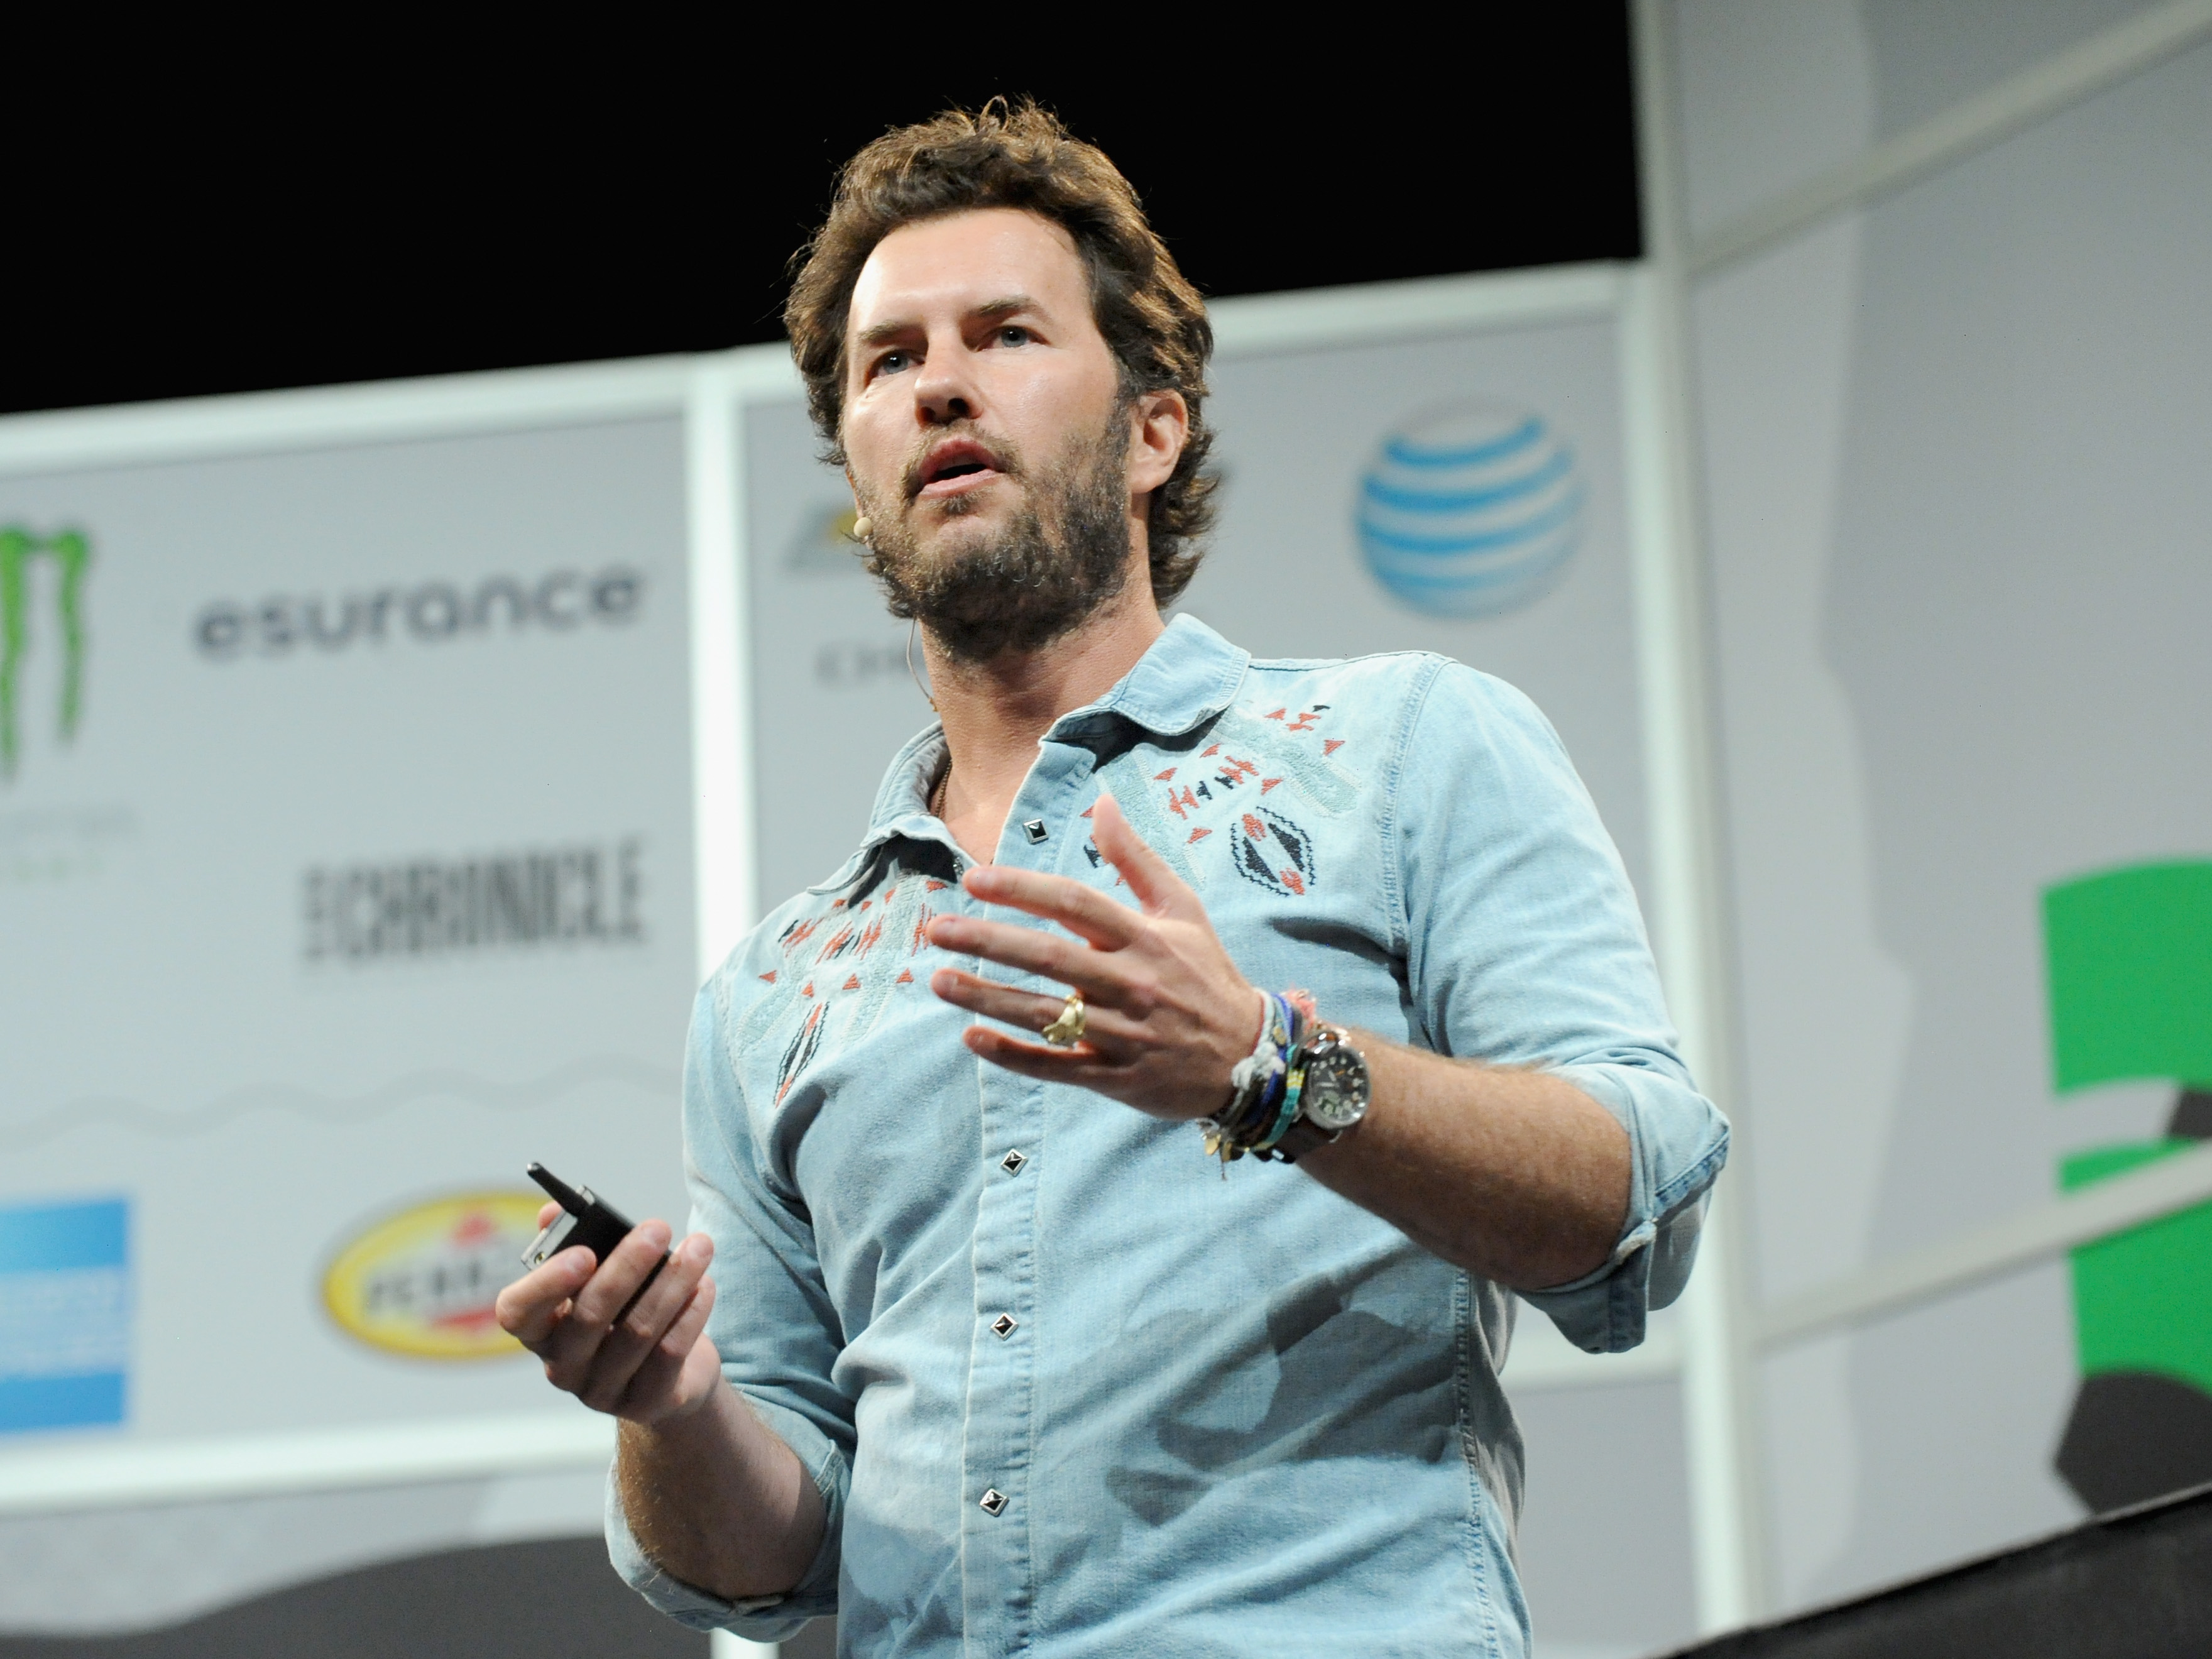 Toms founder Blake Mycoskie speaks at the 2014 SXSW Music, Film + Interactive Festival at Austin on March 11, 2014 in Austin, Texas.